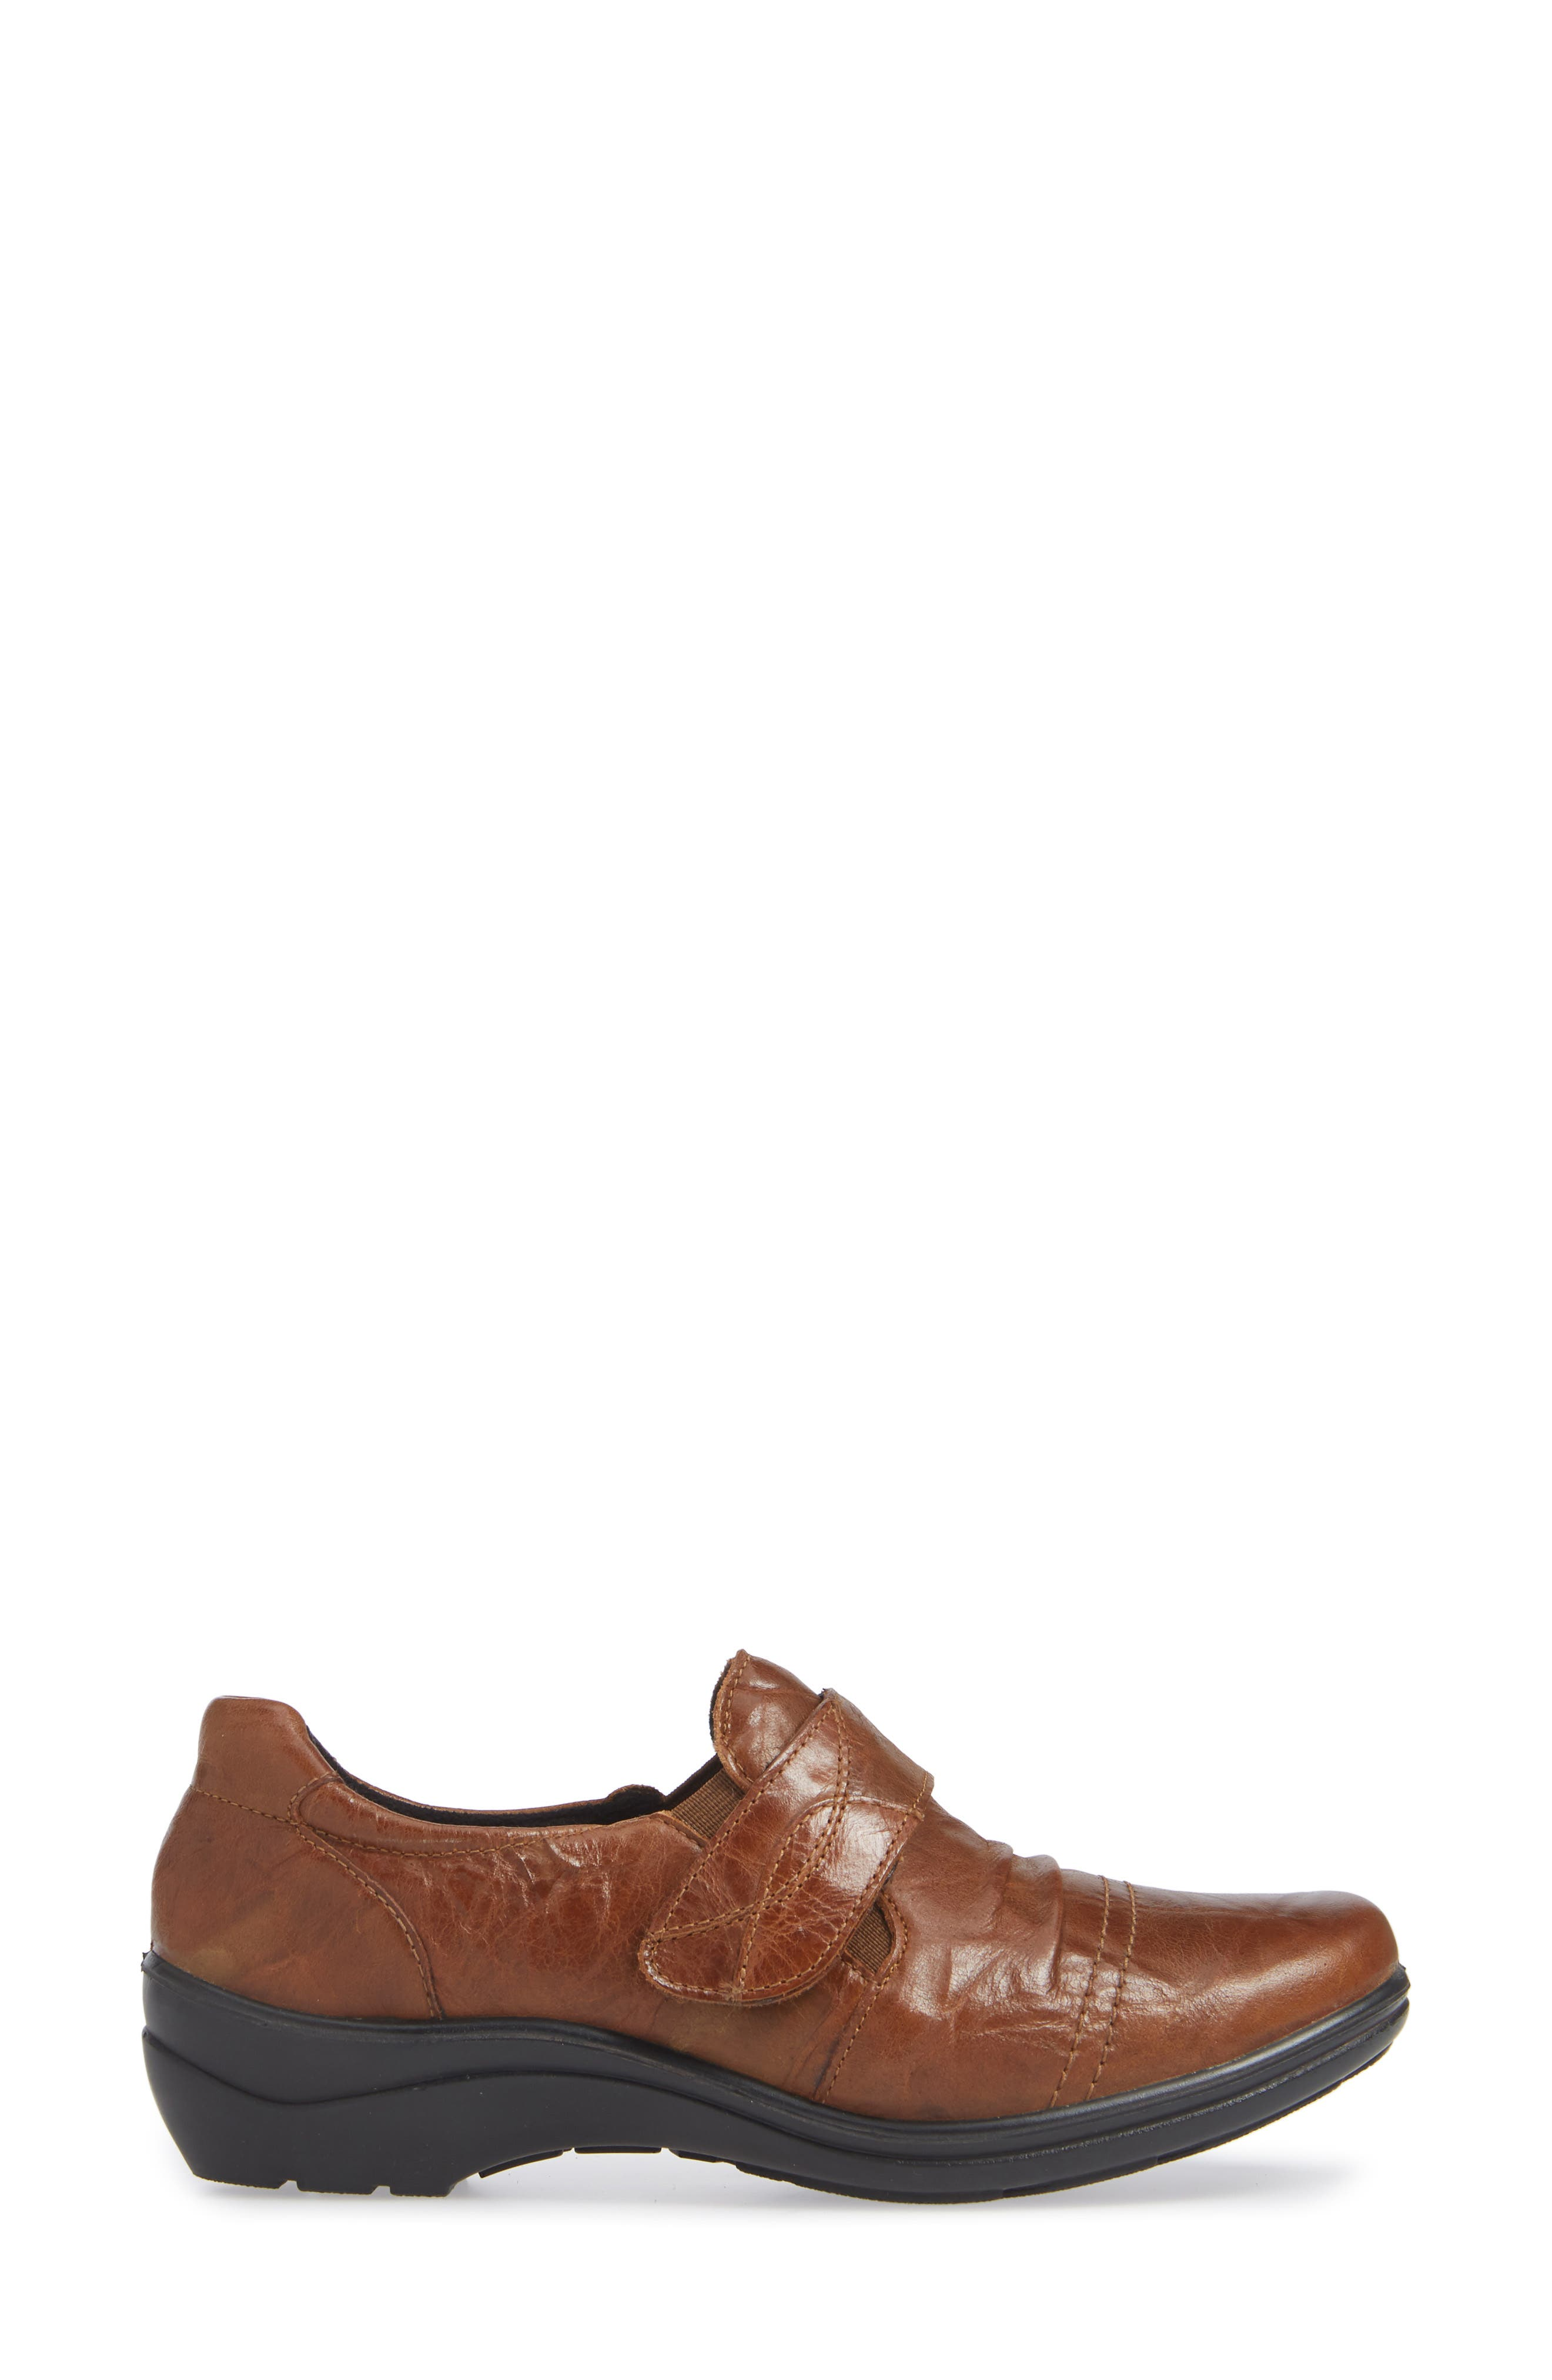 Cassie 43 Loafer,                             Alternate thumbnail 3, color,                             BROWN LEATHER